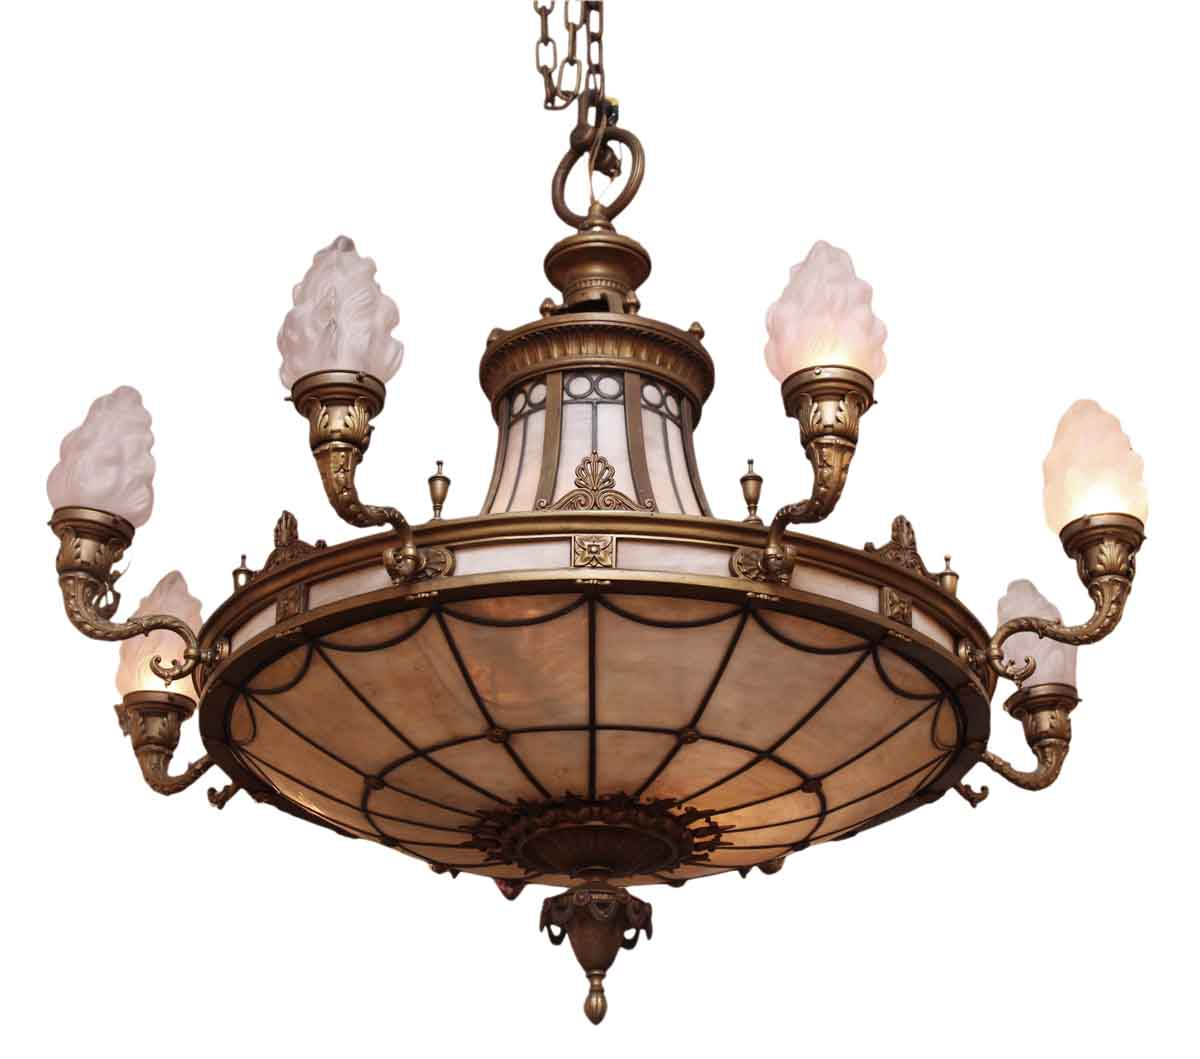 Ornate bronze chandelier from landmark nyc building olde good things - Building a chandelier ...